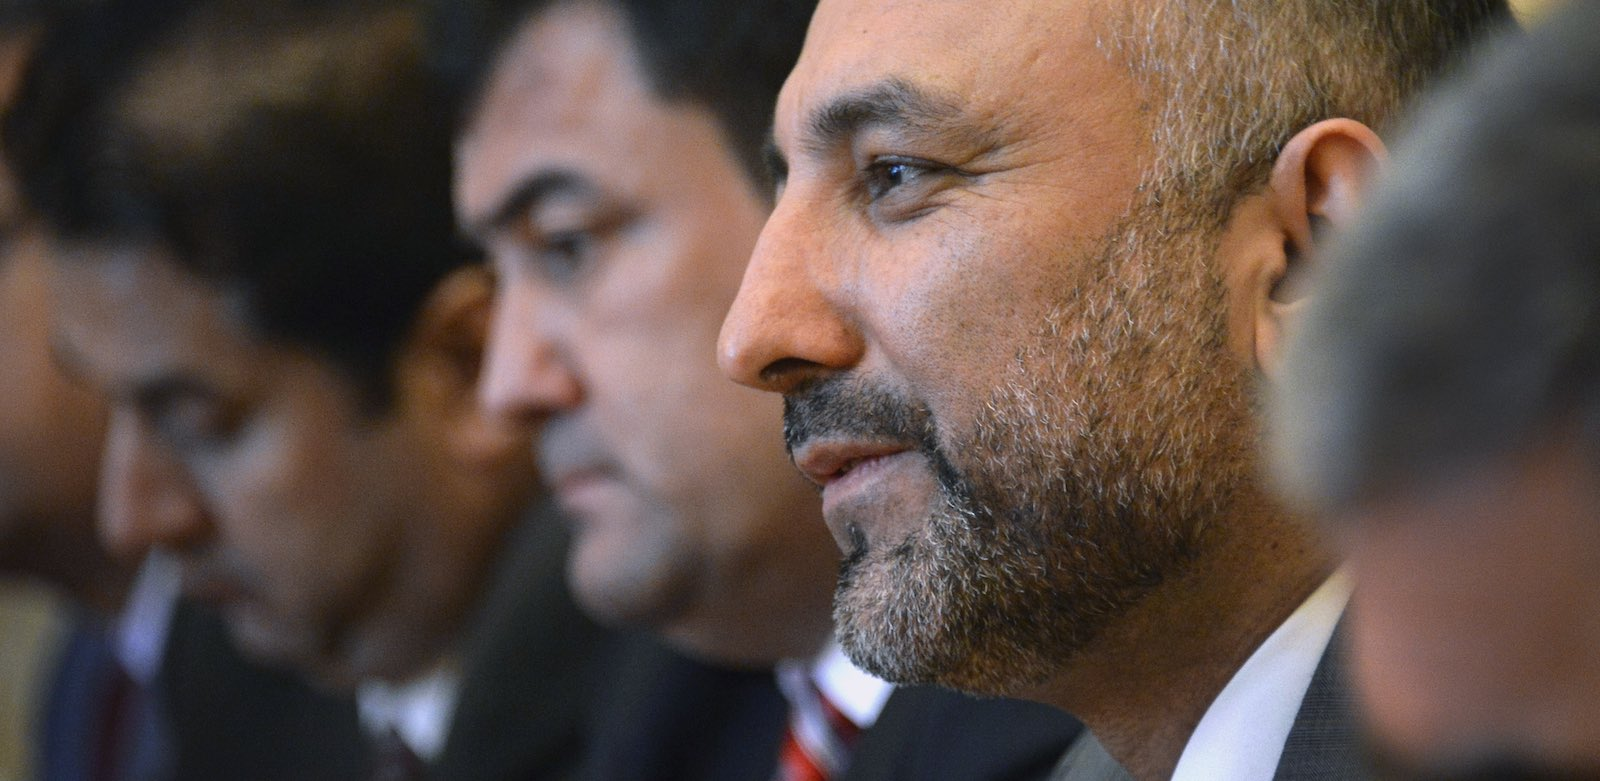 Hanif Atmar, former Afghan National Security Advisor, will run for president (Photo: Alexander Nemenov via Getty)